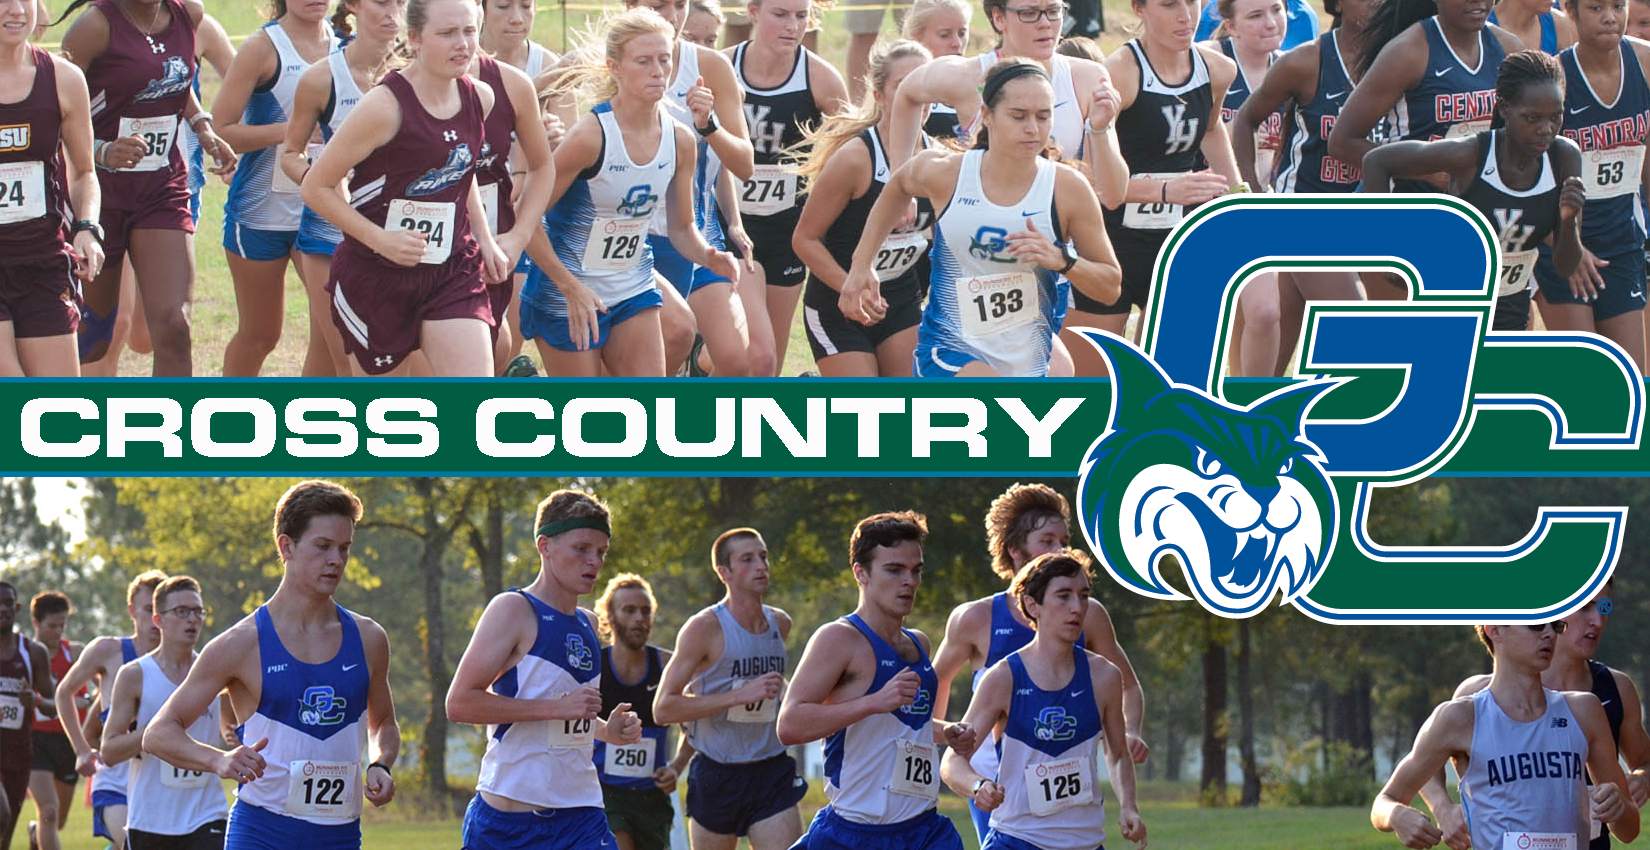 Bobcat Cross Country